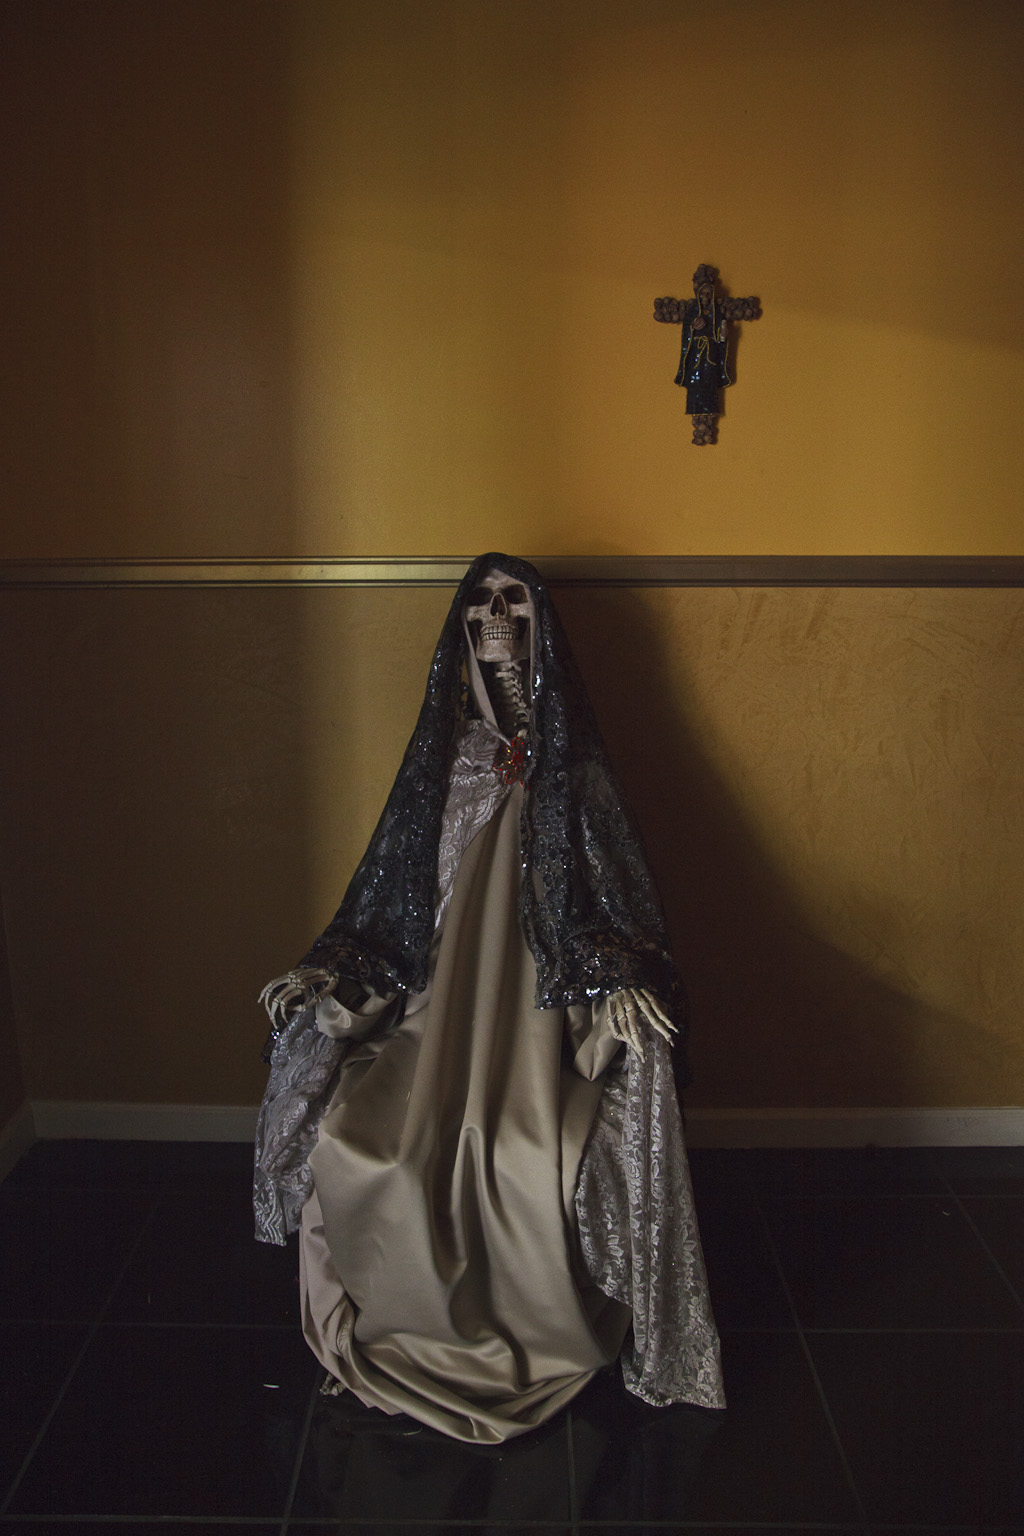 Morbid Anatomy Santa Muerte San La Muerte And The Fascinating - 22 weirdest deaths ever morbid fascinating